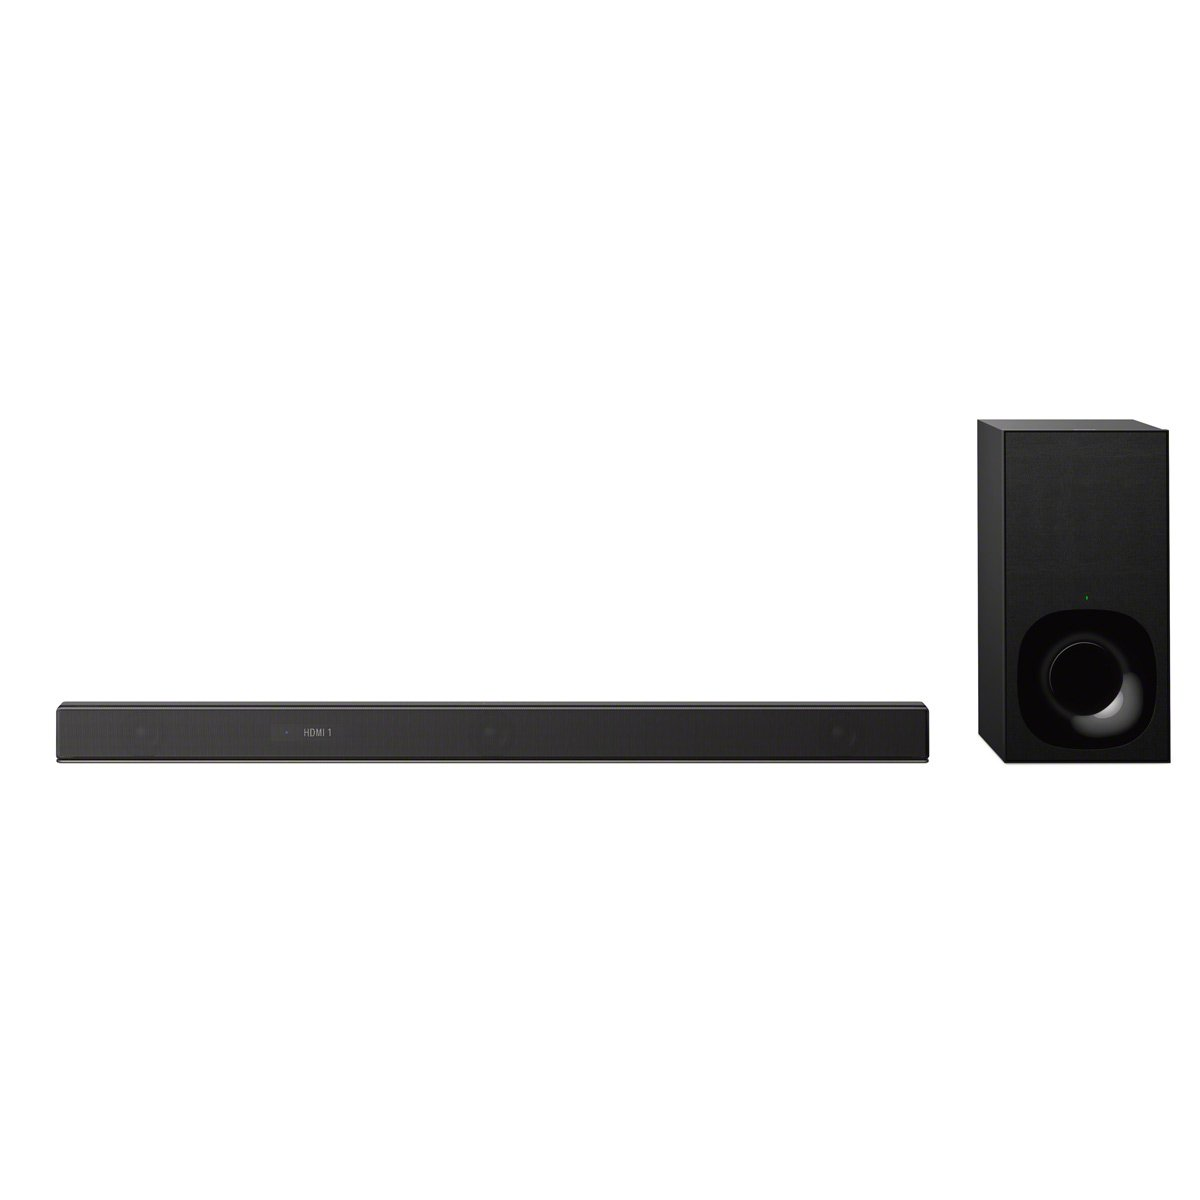 Sony HT-Z9F 3.1-Channel Dolby Atmos Sound Bar with Subwoofer